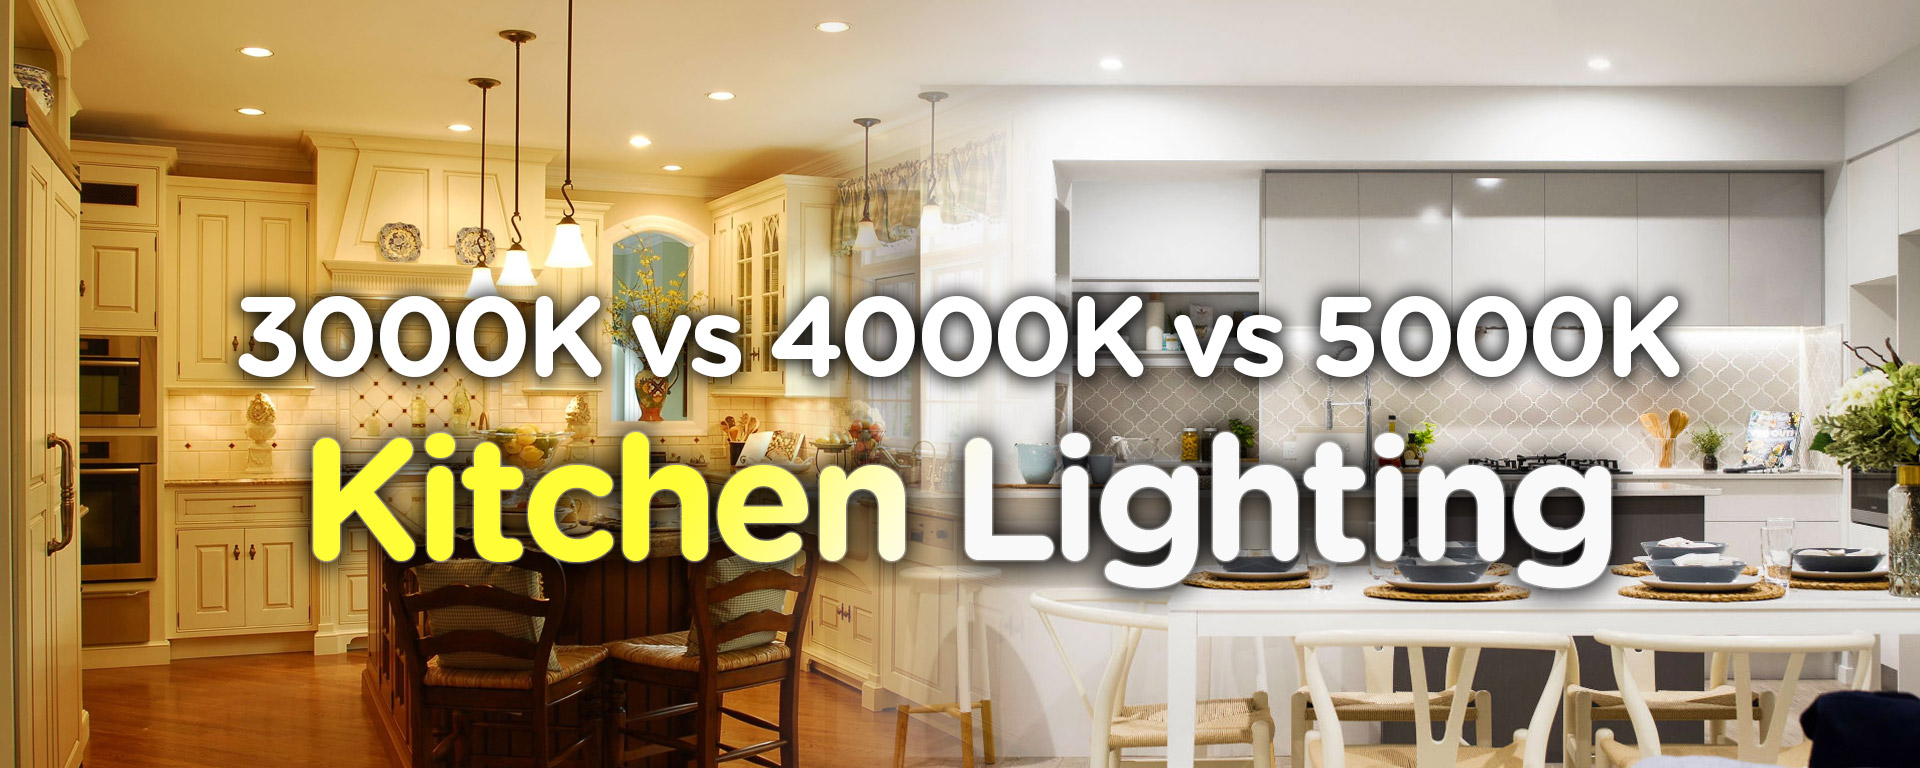 3000k vs 4000k vs 5000k LED Bulbs: Which is Best for Kitchen?